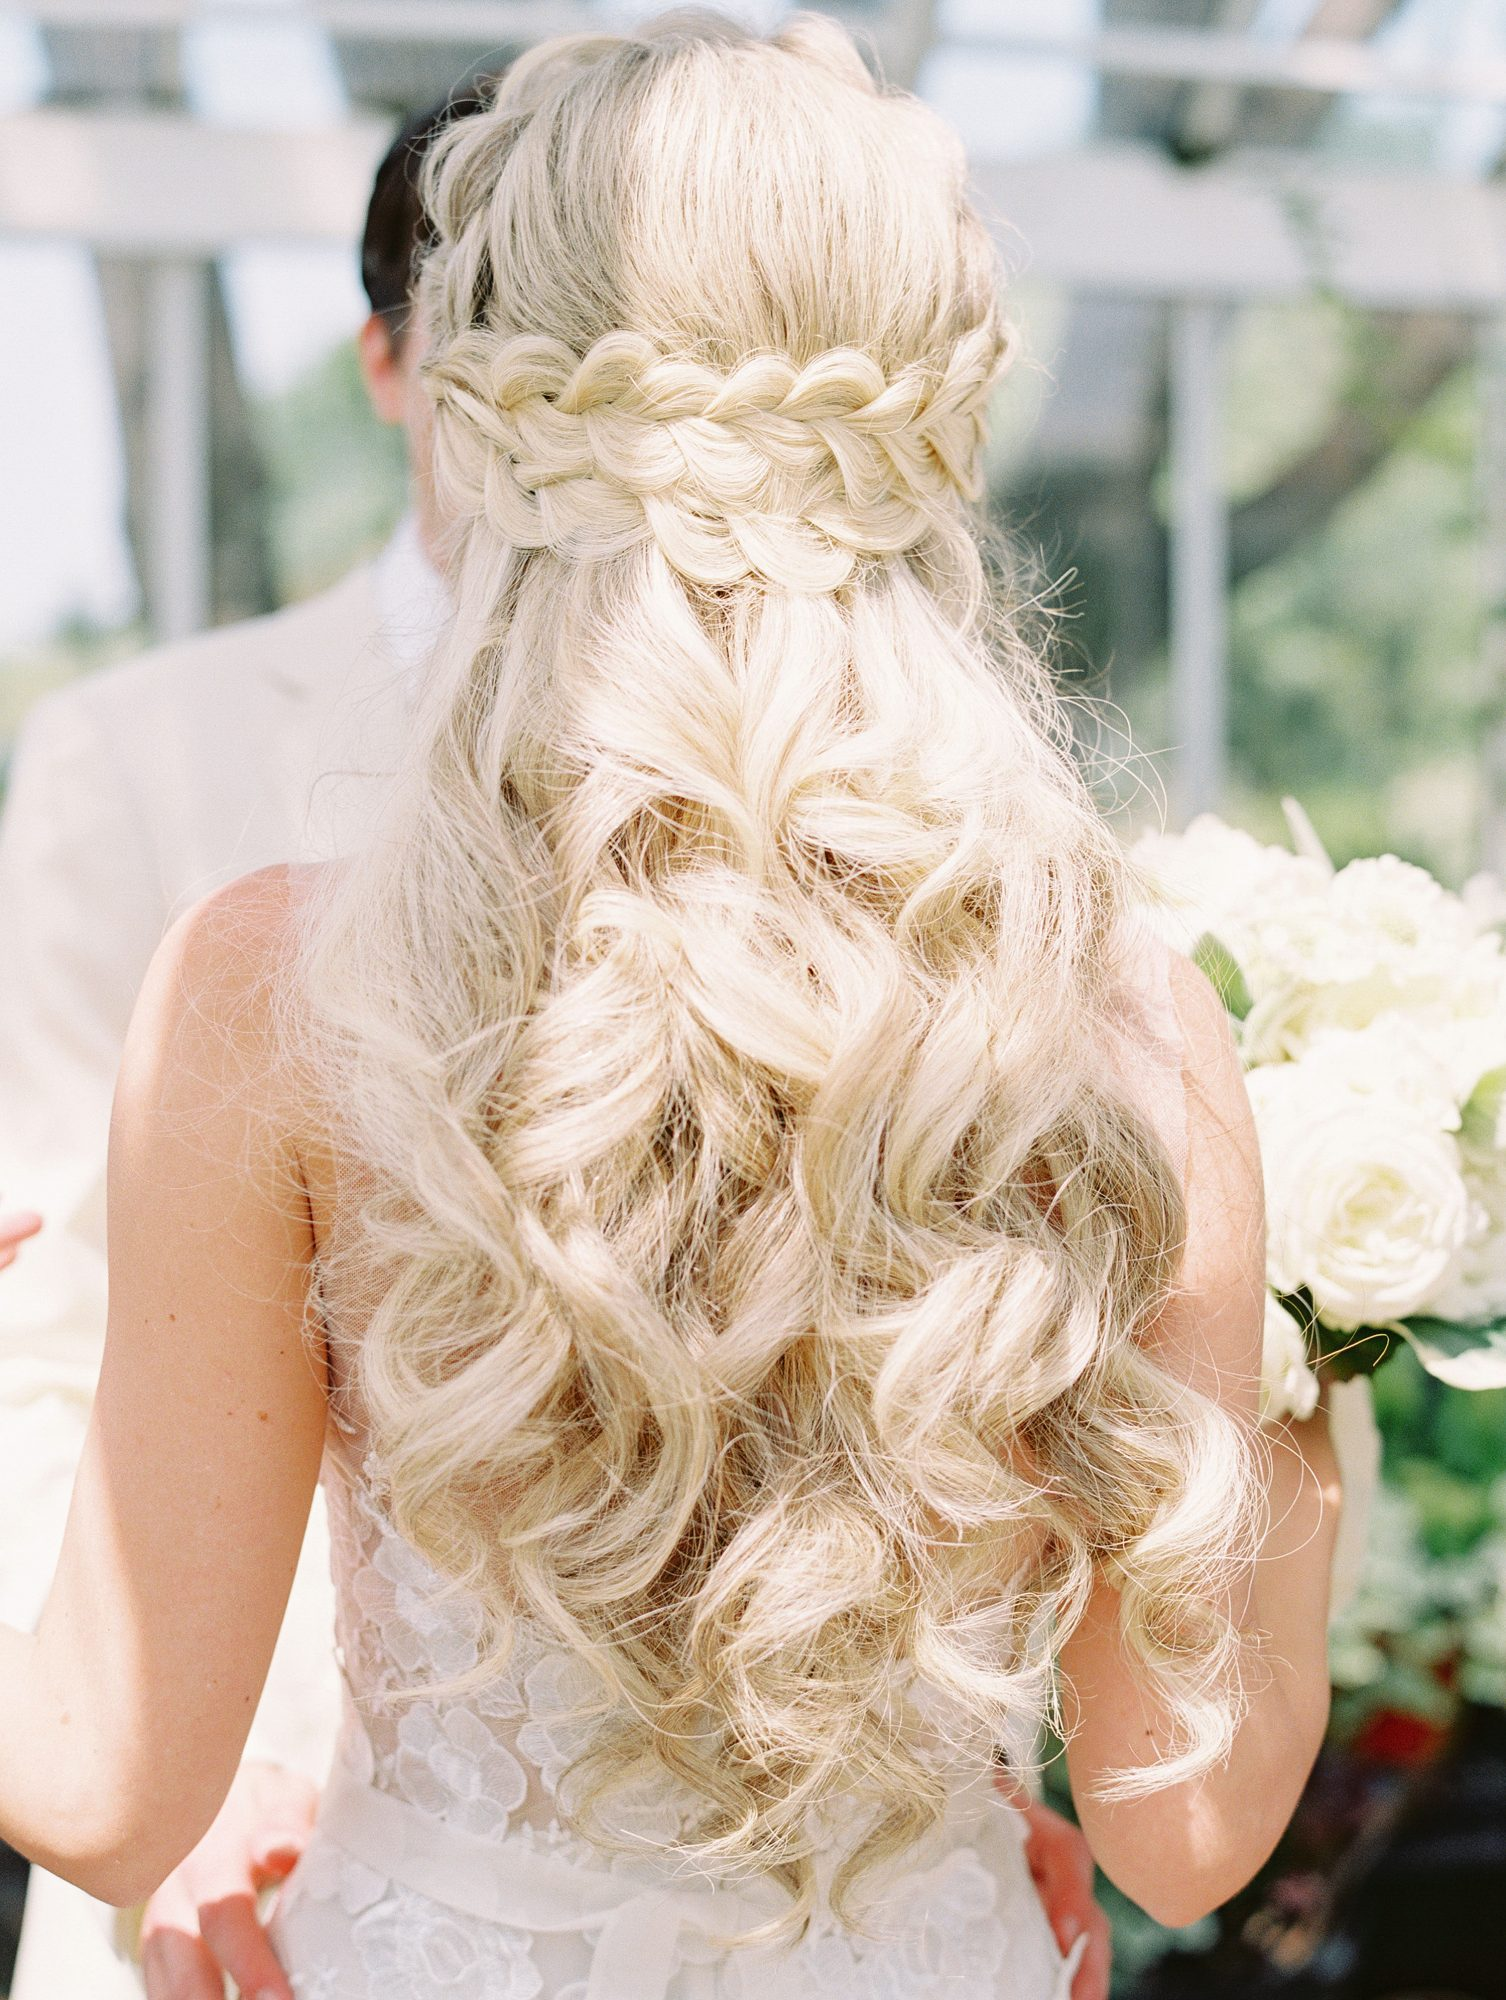 stephanie philip wedding braid